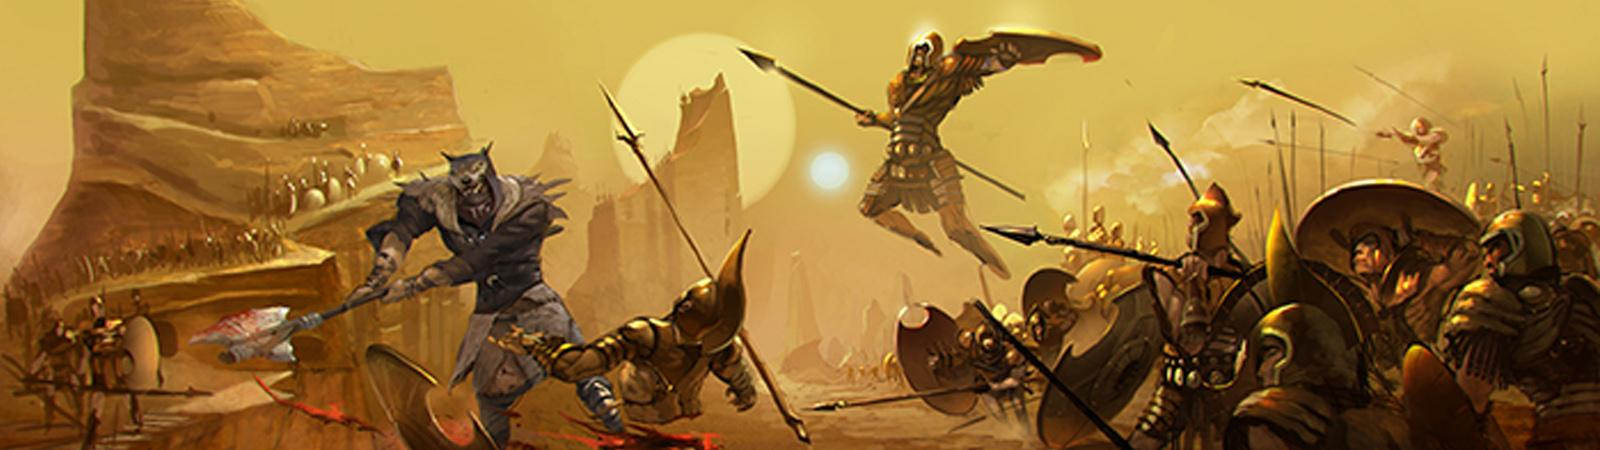 Skara The Blade Remains 8-Bit Studio